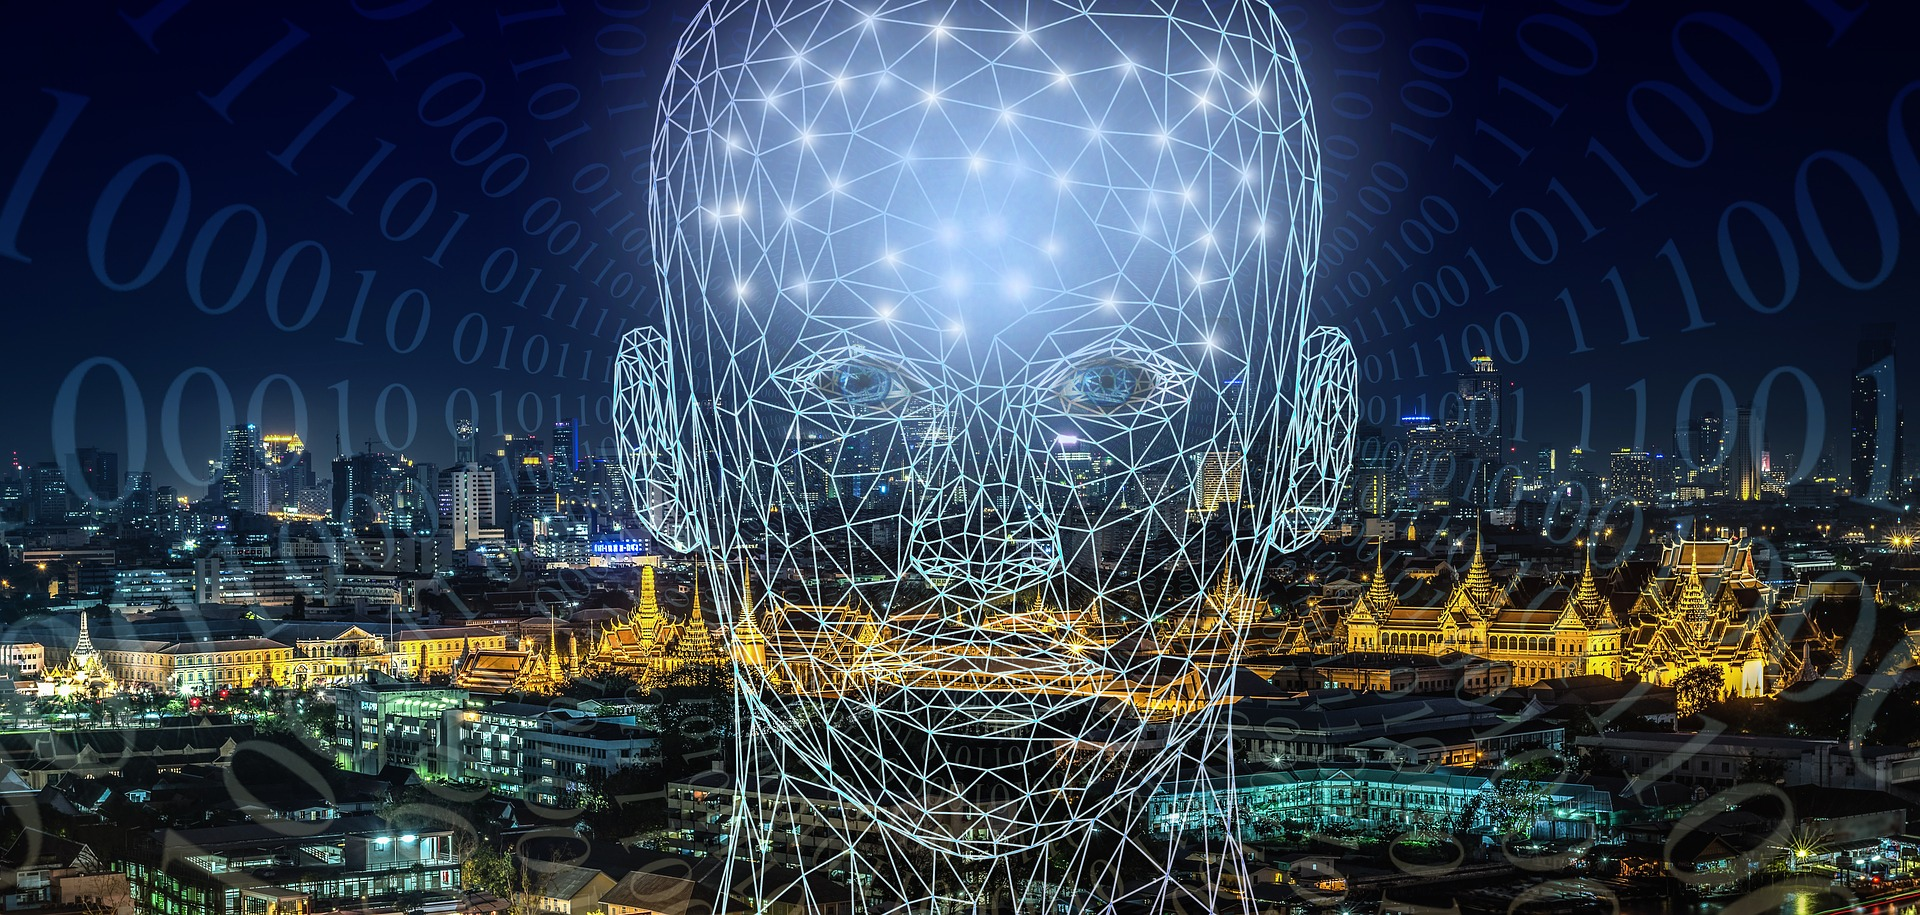 New curriculum will focus on philosophy of artificial intelligence